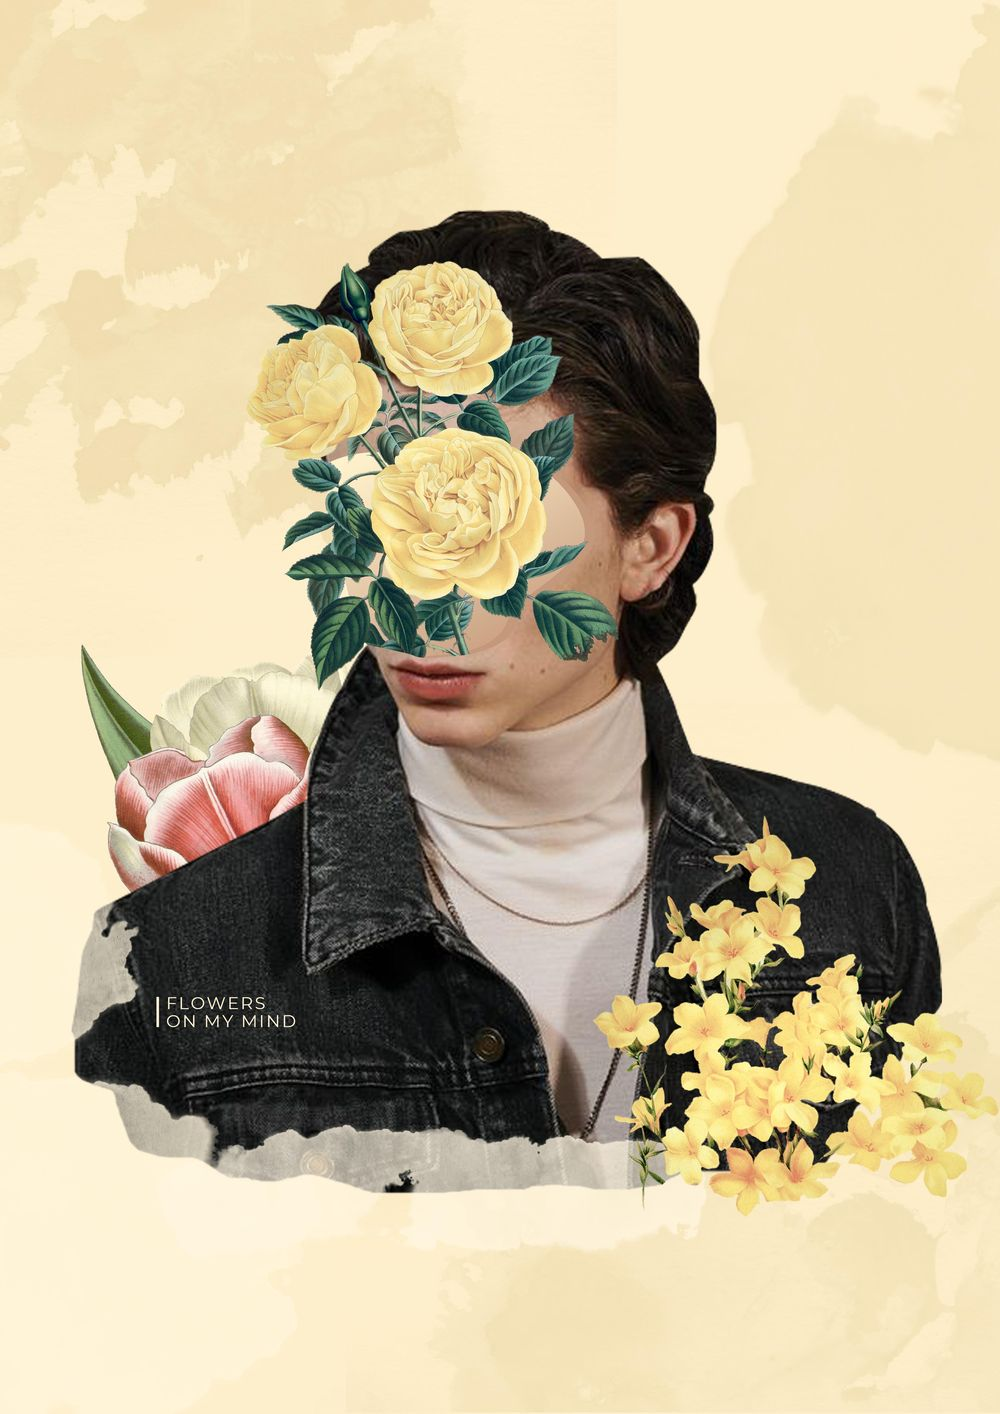 Timothee Collage - image 1 - student project